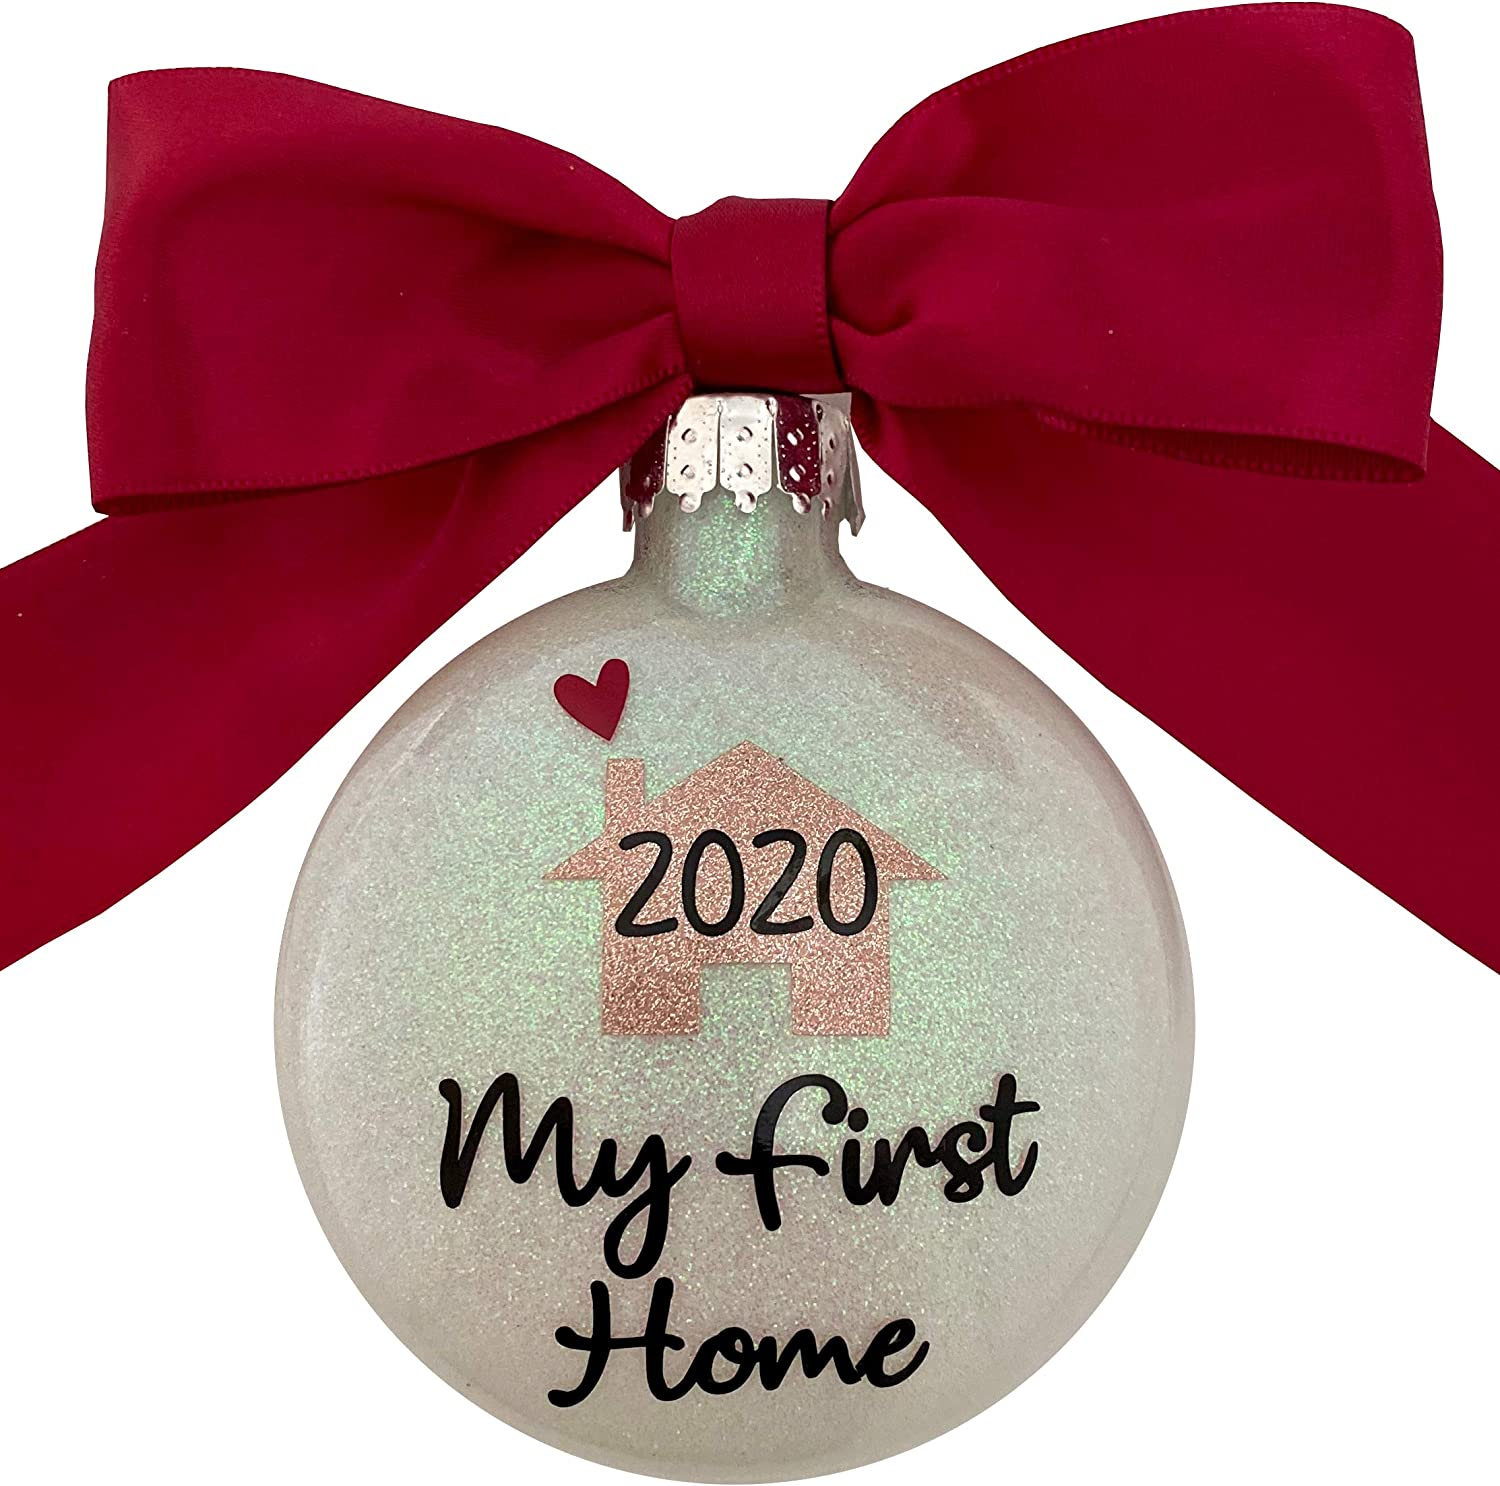 My First Home 2020 Handcrafted in The USA Glitter Christmas Ornament - Great Real Estate Agent or House Warming Gift